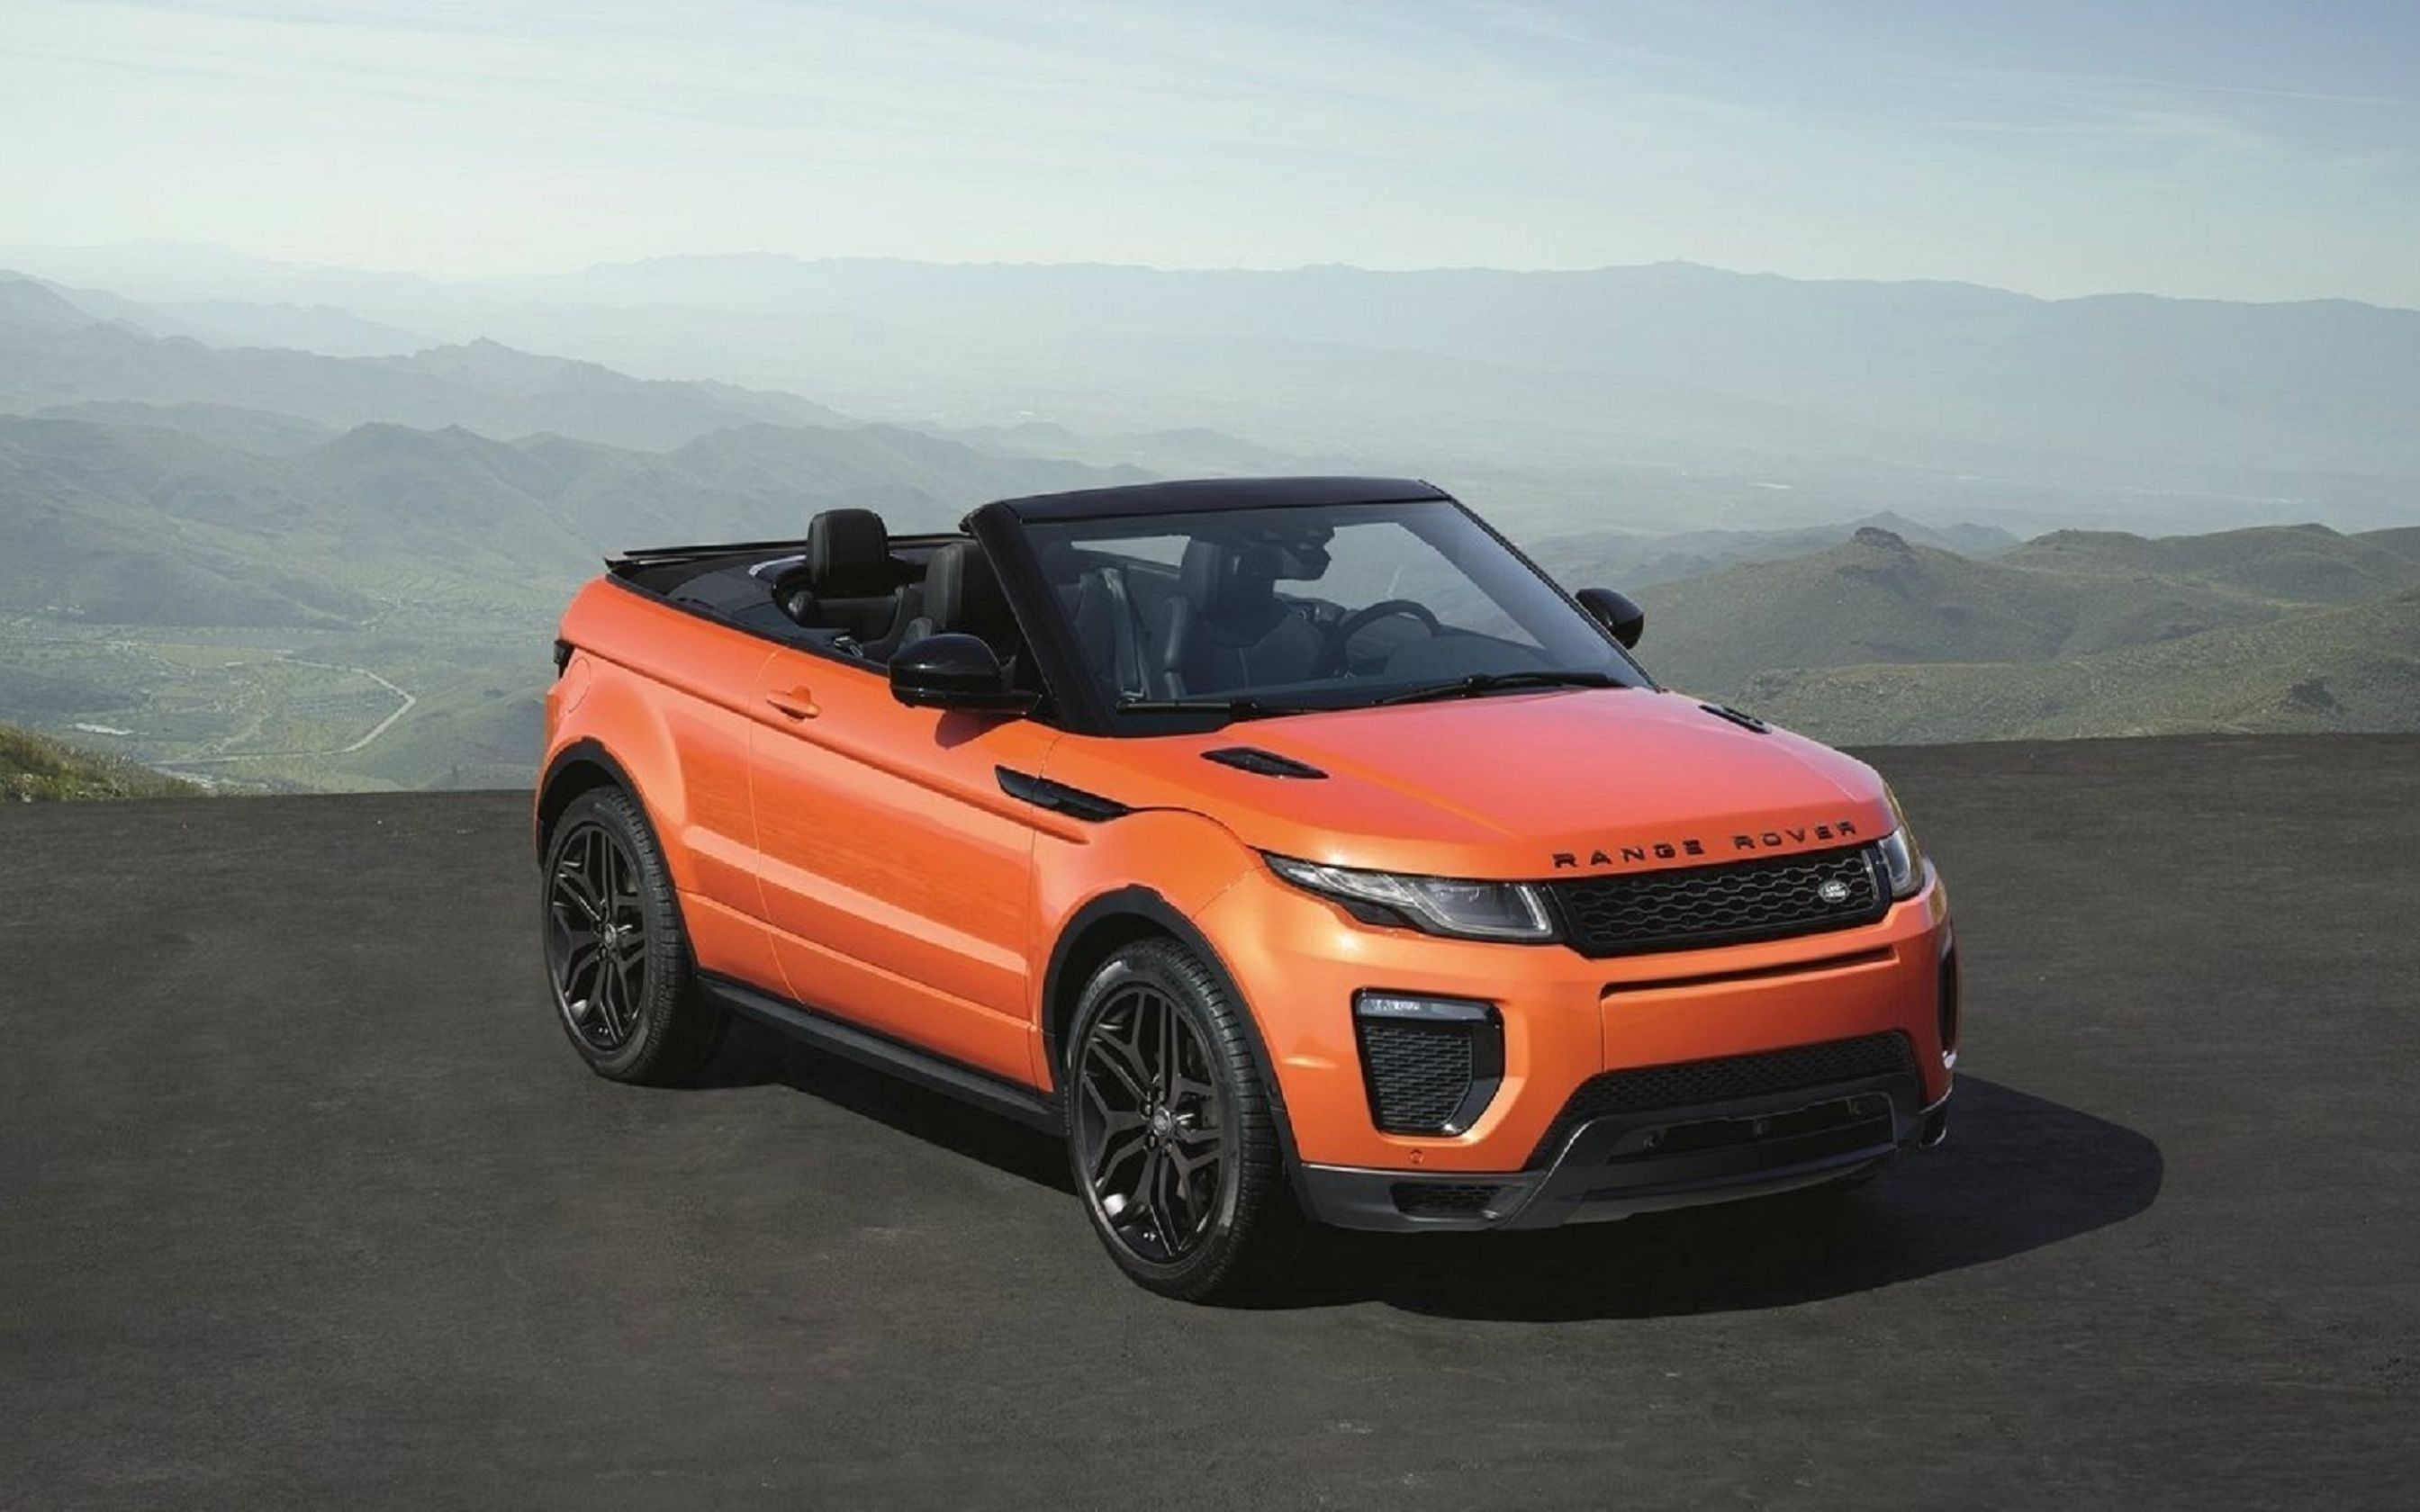 Download free HD 2017 Land Rover Range Rover Evoque Convertible  Wallpaper, image